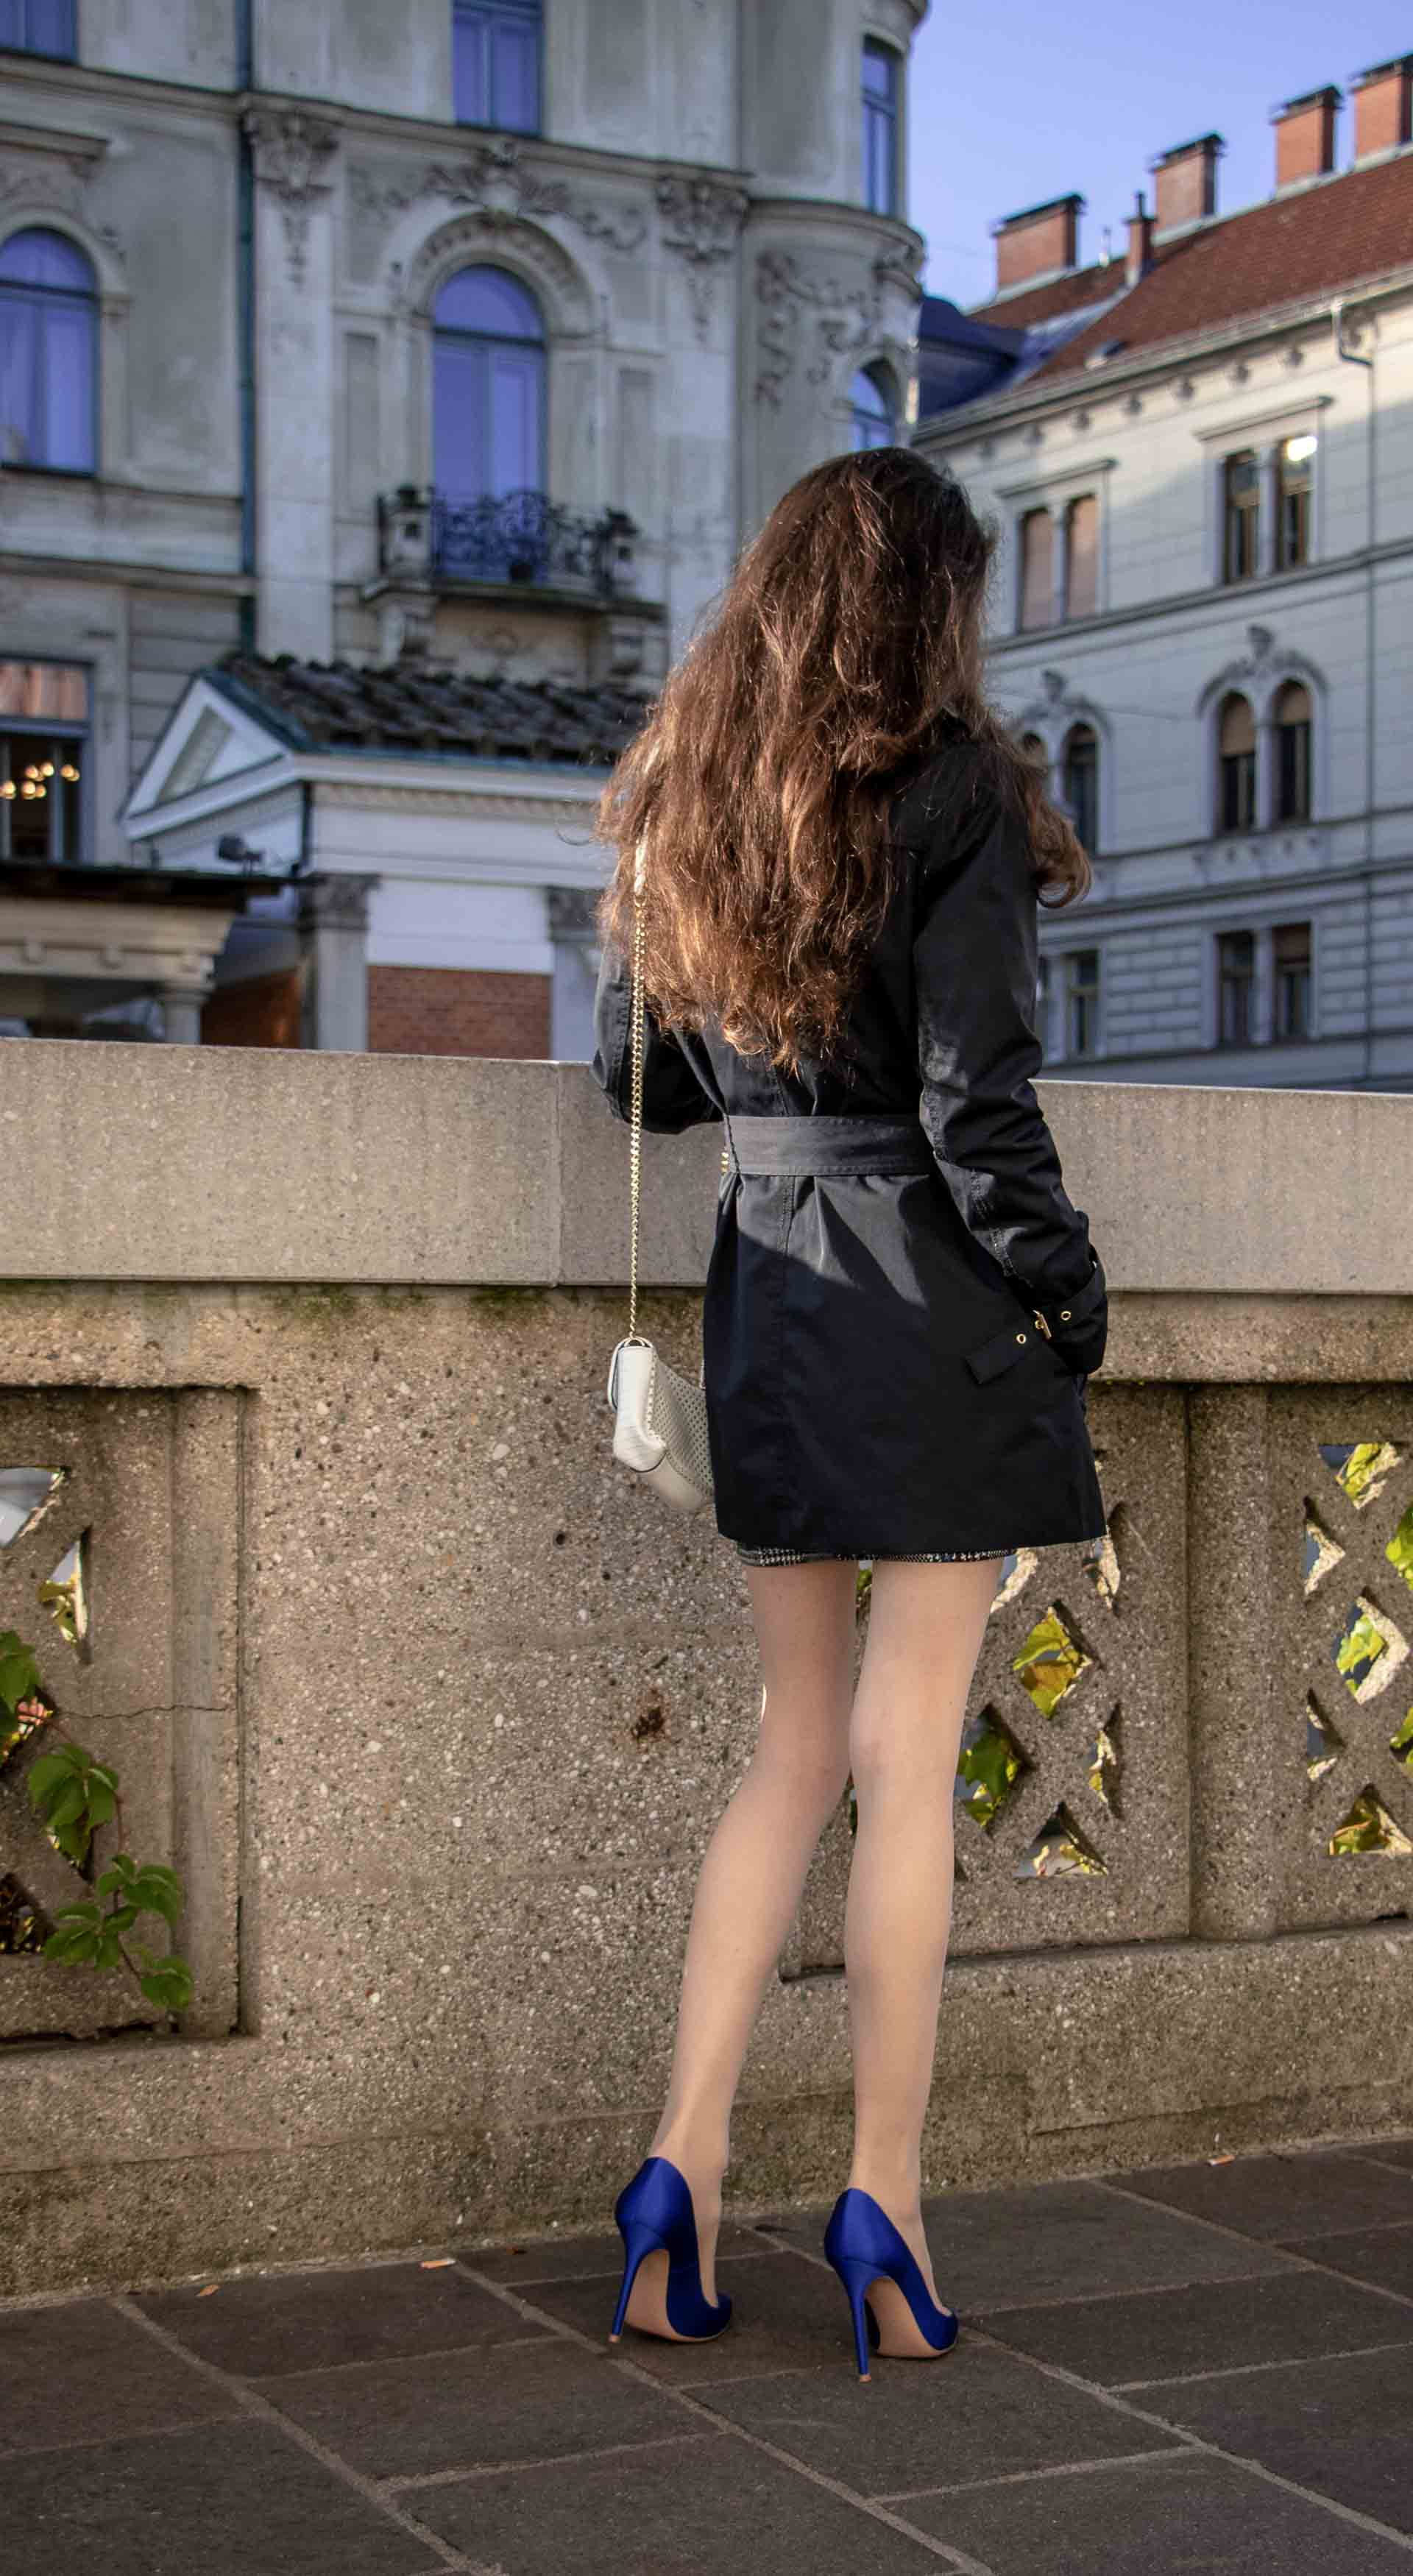 Beautiful Slovenian Fashion Blogger Veronika Lipar of Brunette from Wall dressed in dark navy Michael Kors short trench coat, Gianvito Rossi blue satin court shoes, white chain shoulder bag walking home after partying